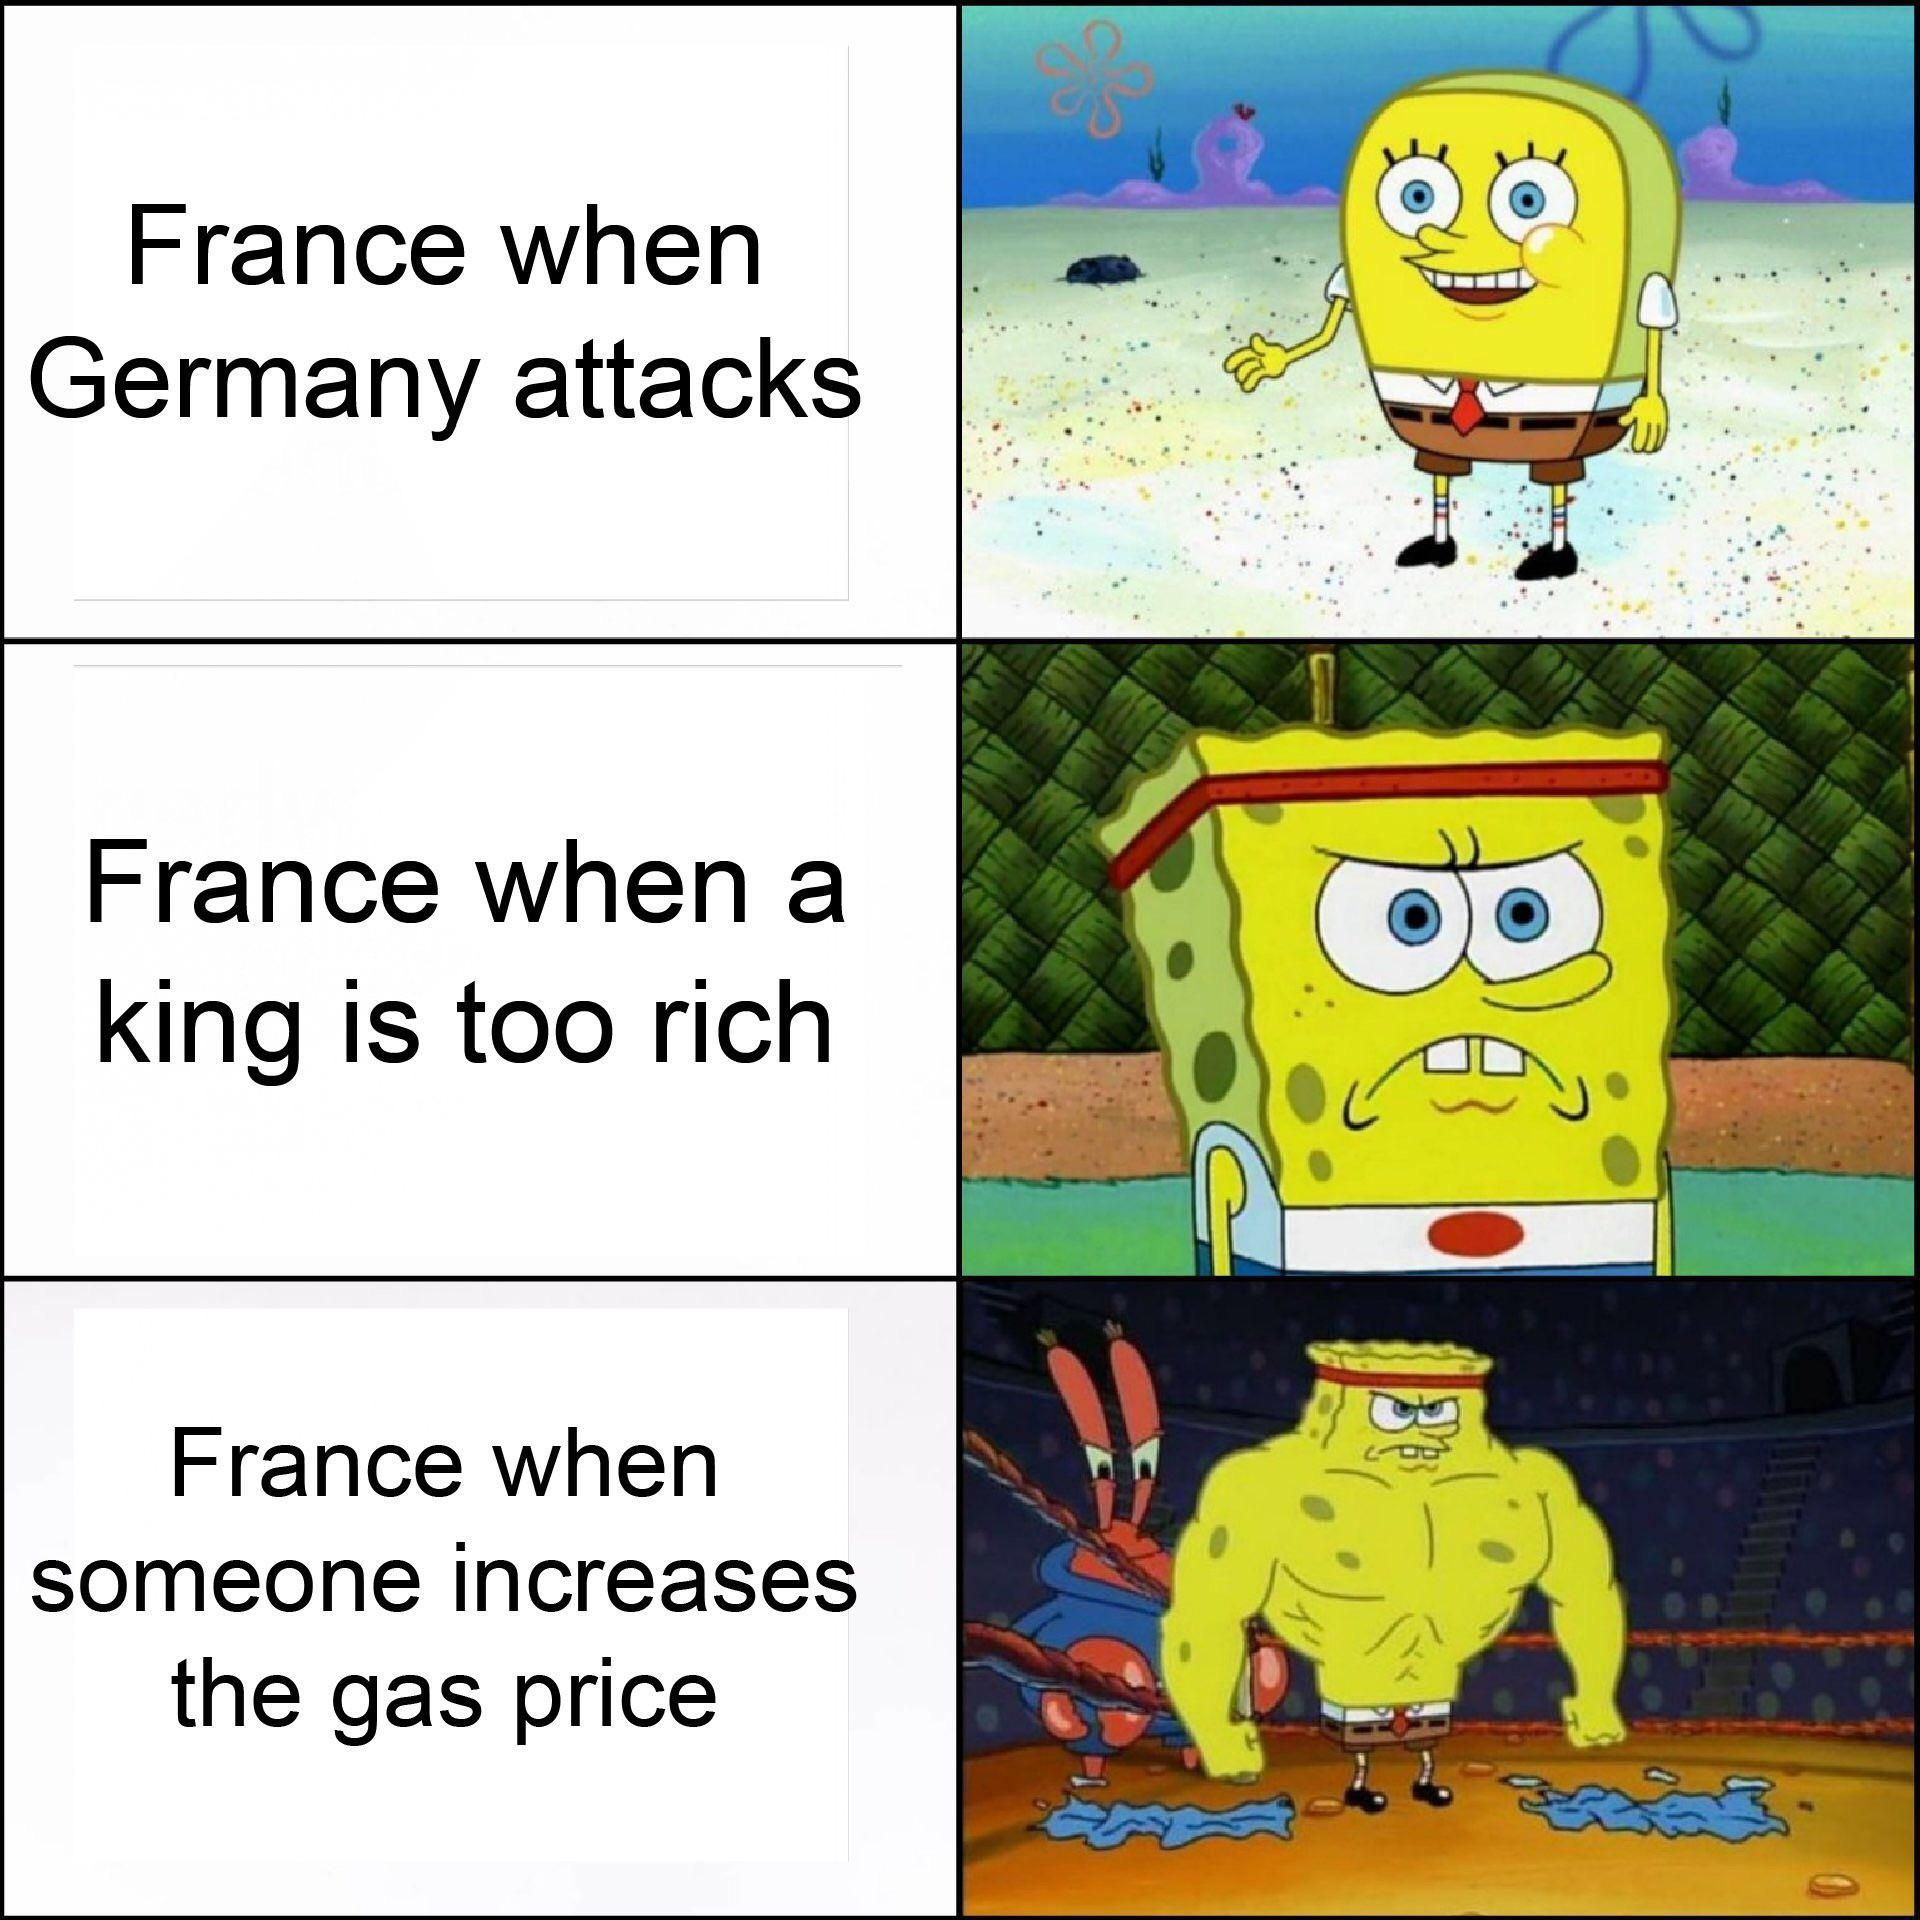 Waiting for the Franxit - meme